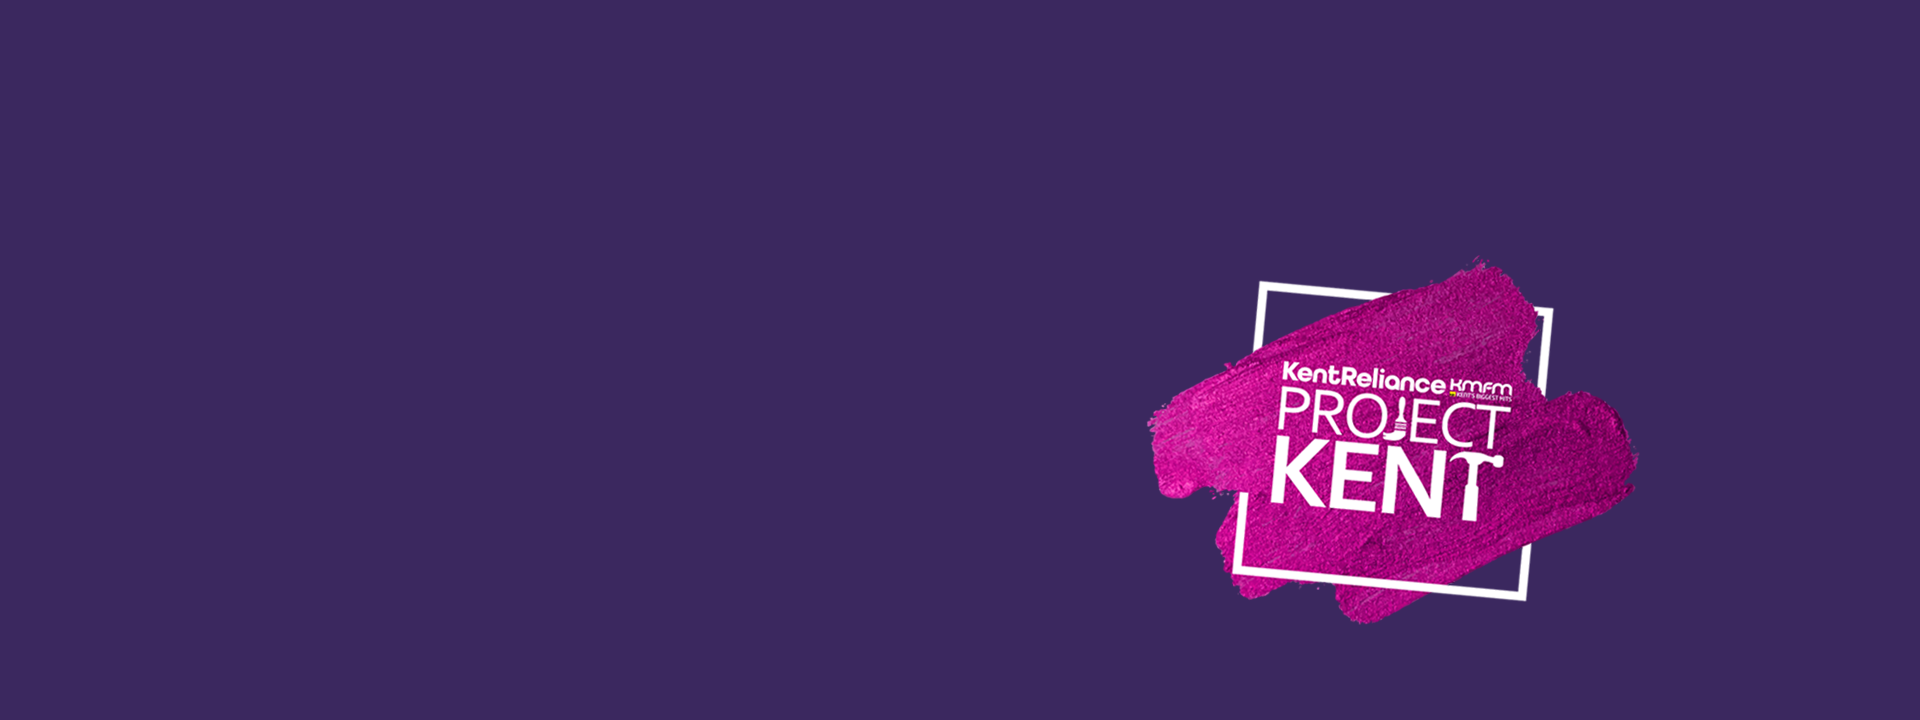 Project Kent - Find out about our chosen projects